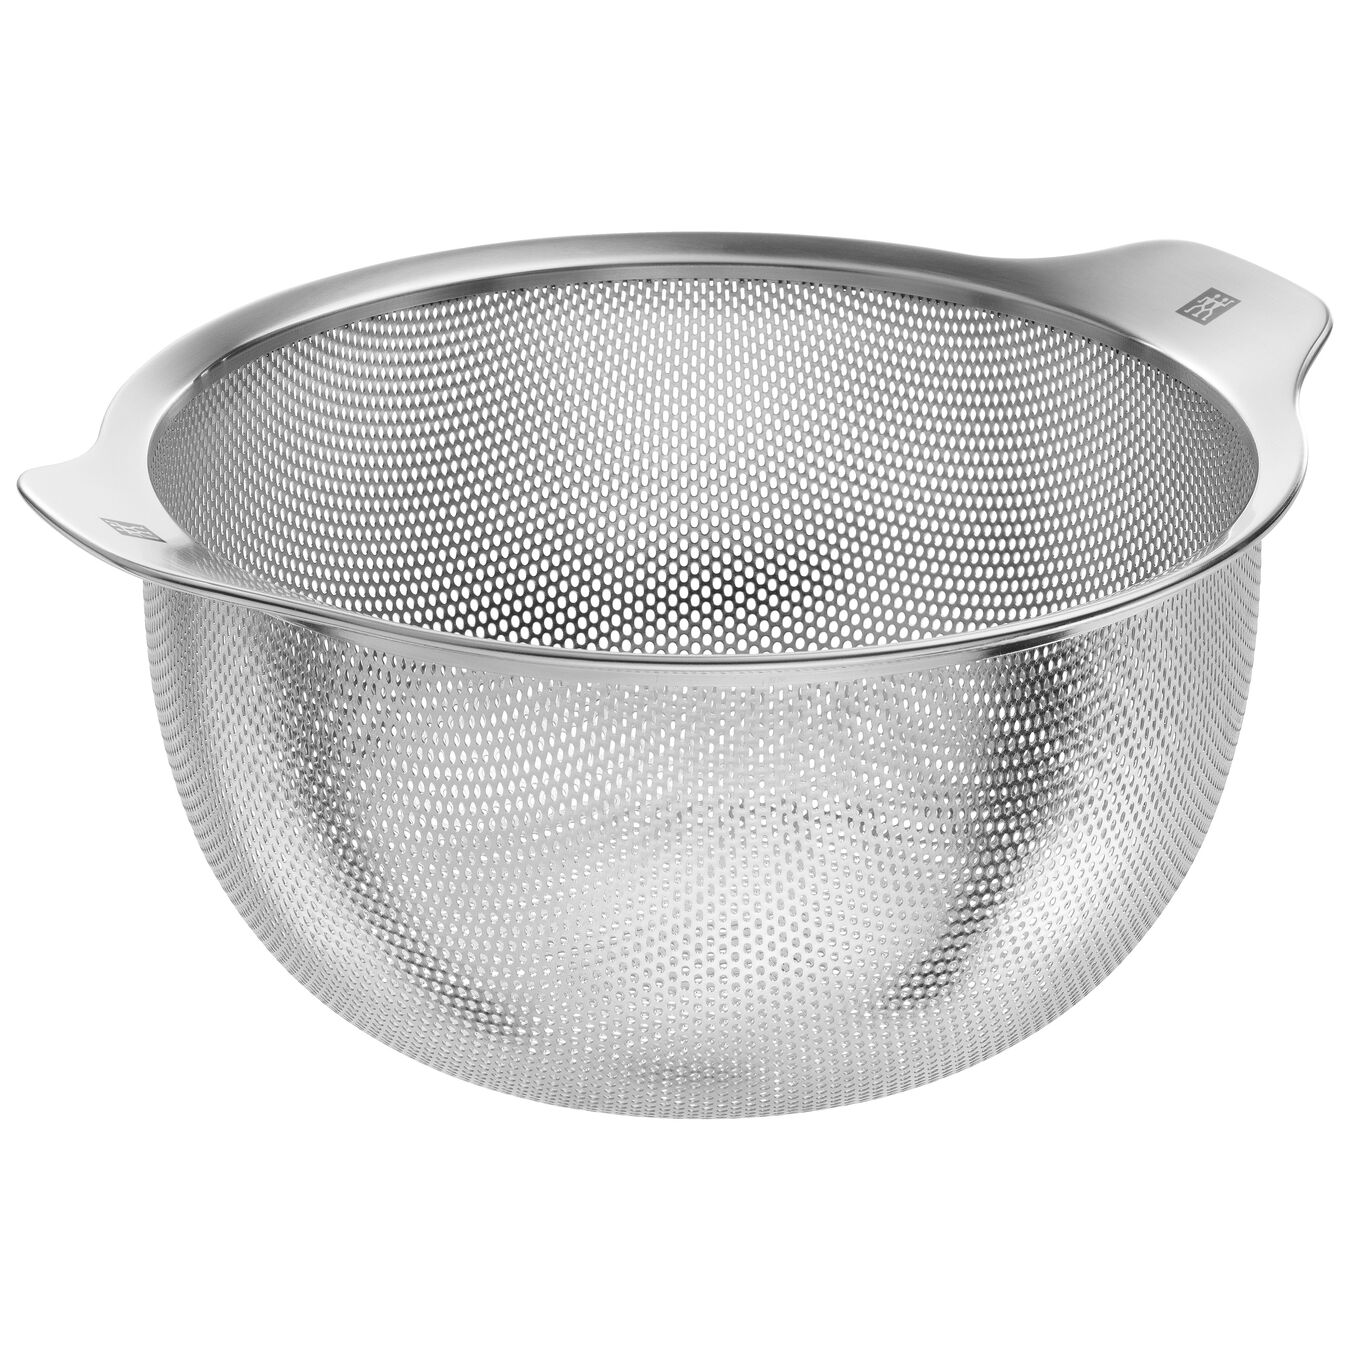 24 cm 18/10 Stainless Steel Passoire,,large 1